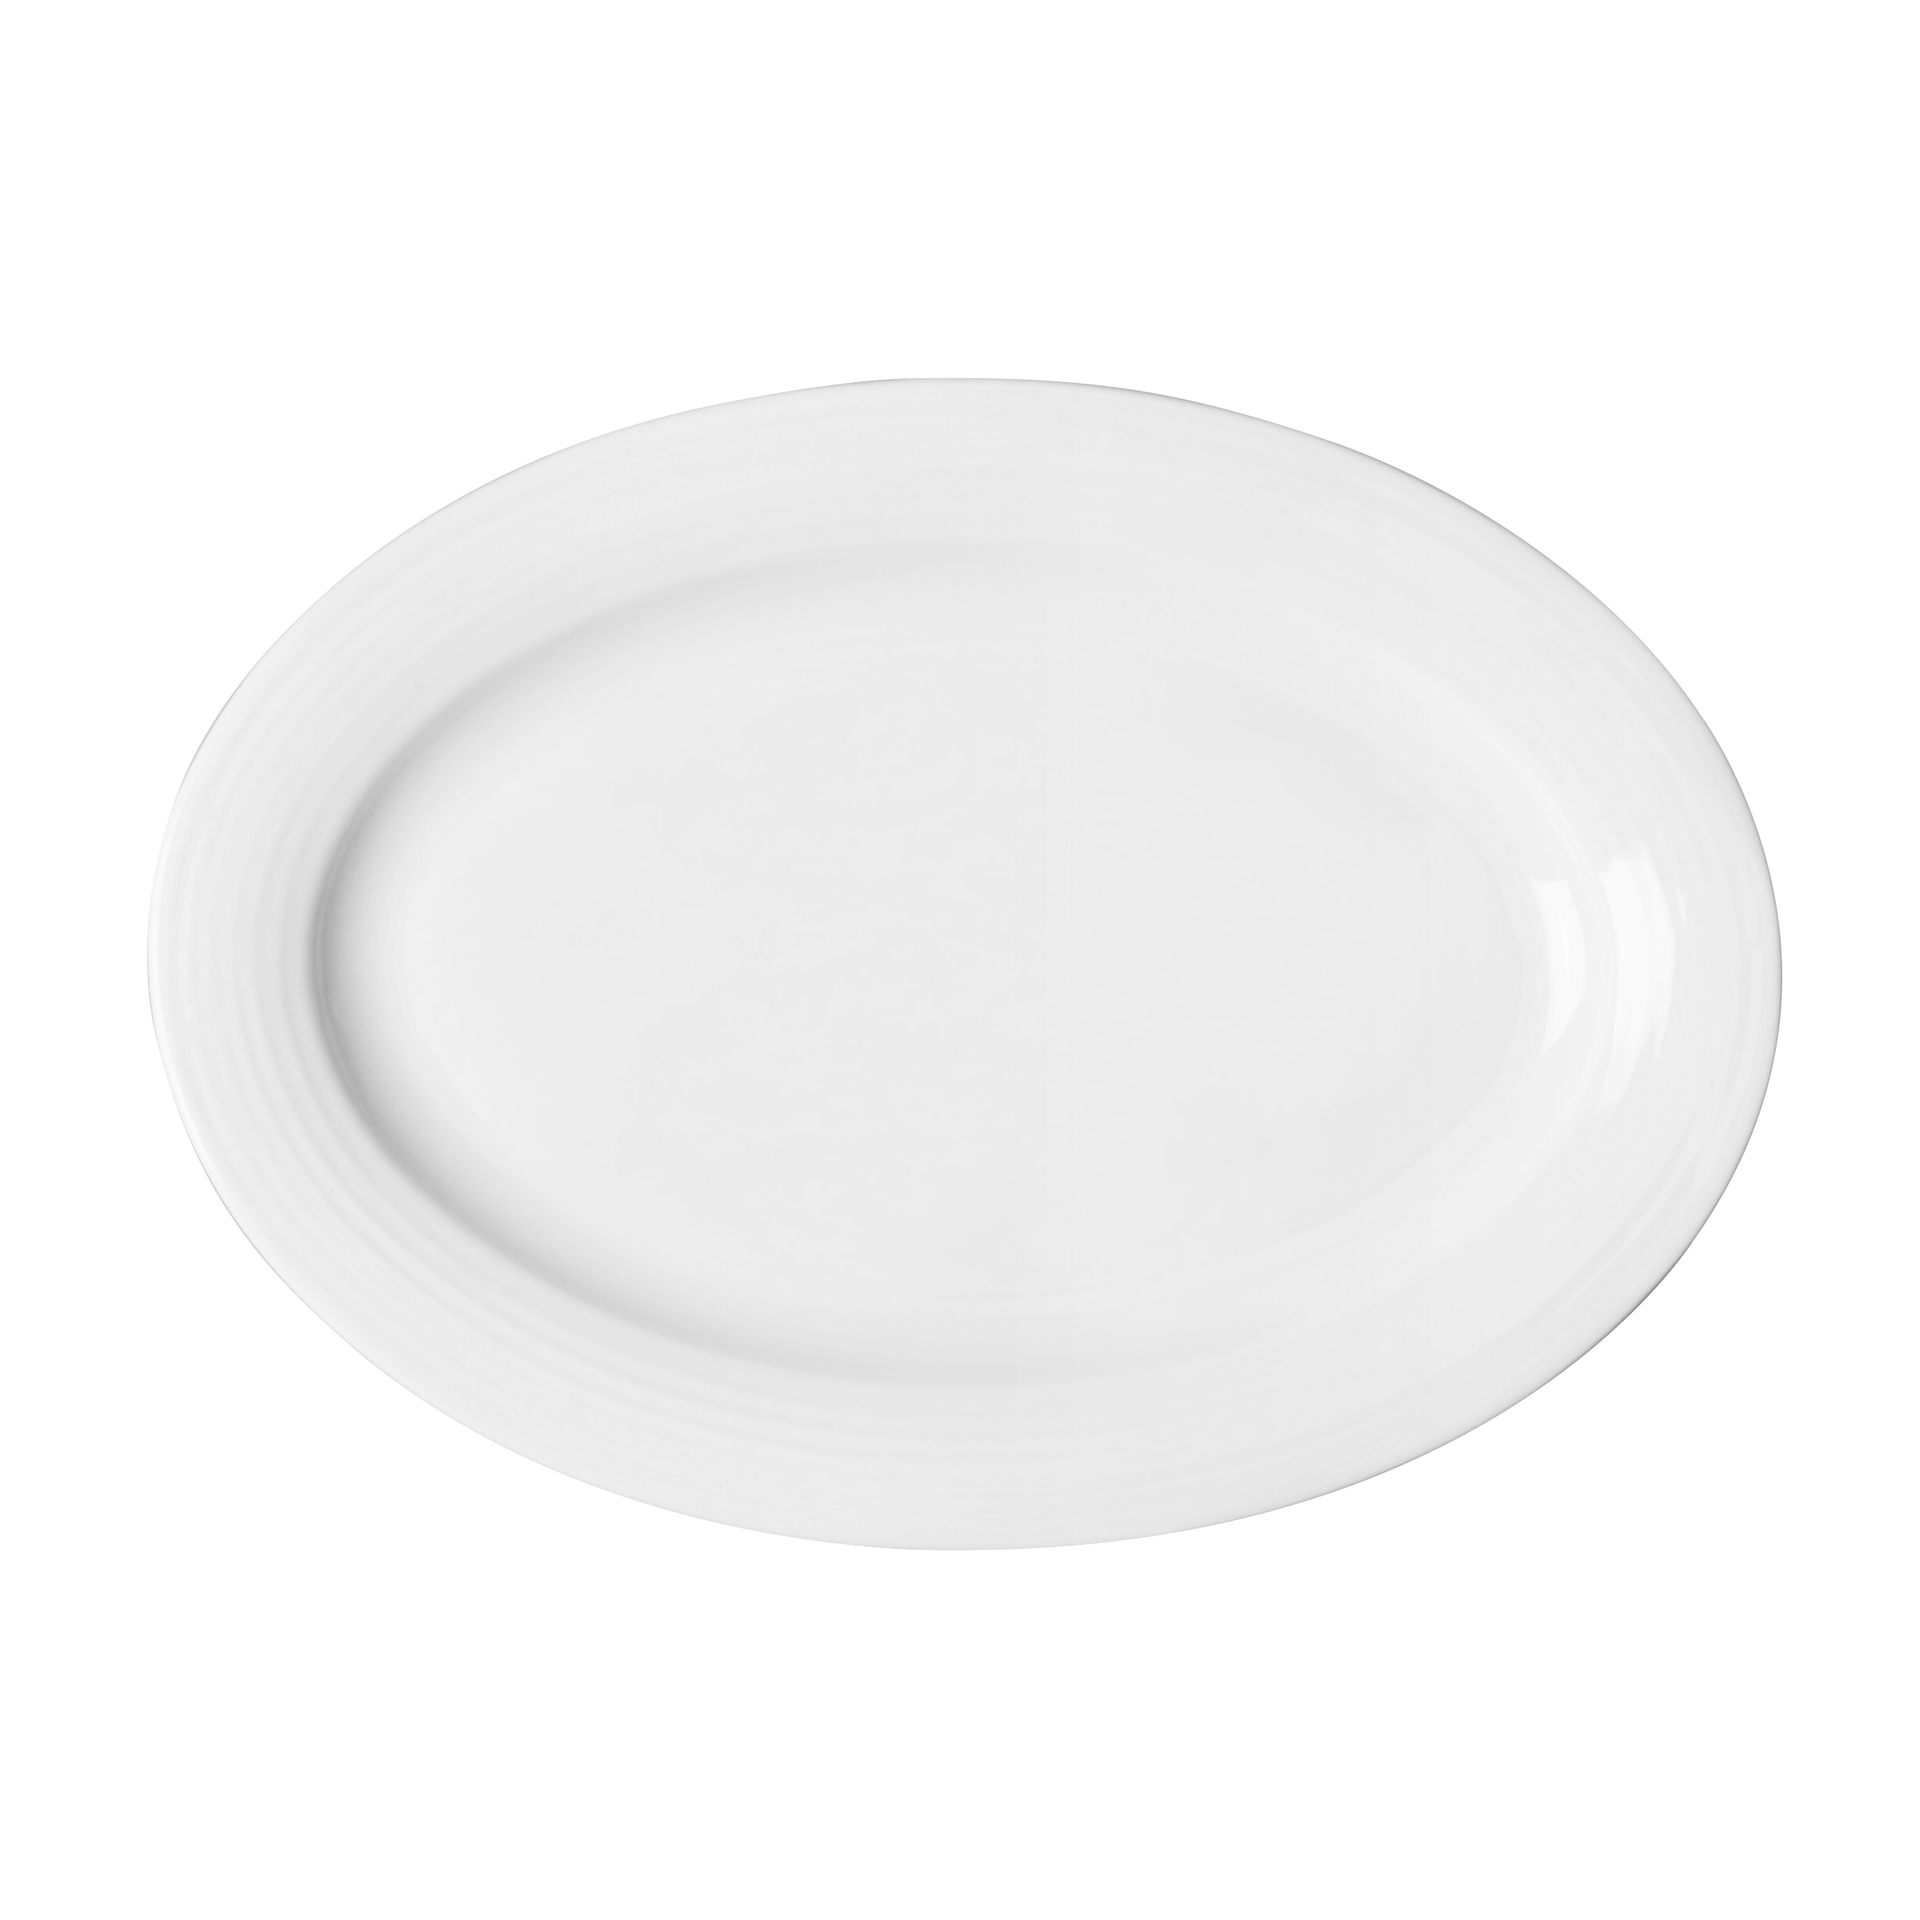 Luxurious Banquet Porcelain Dinnerware Egg Shape Dinner Plate, Chaozhou Factory Catering Fine Oval Ceramic Dish Plates Sets~